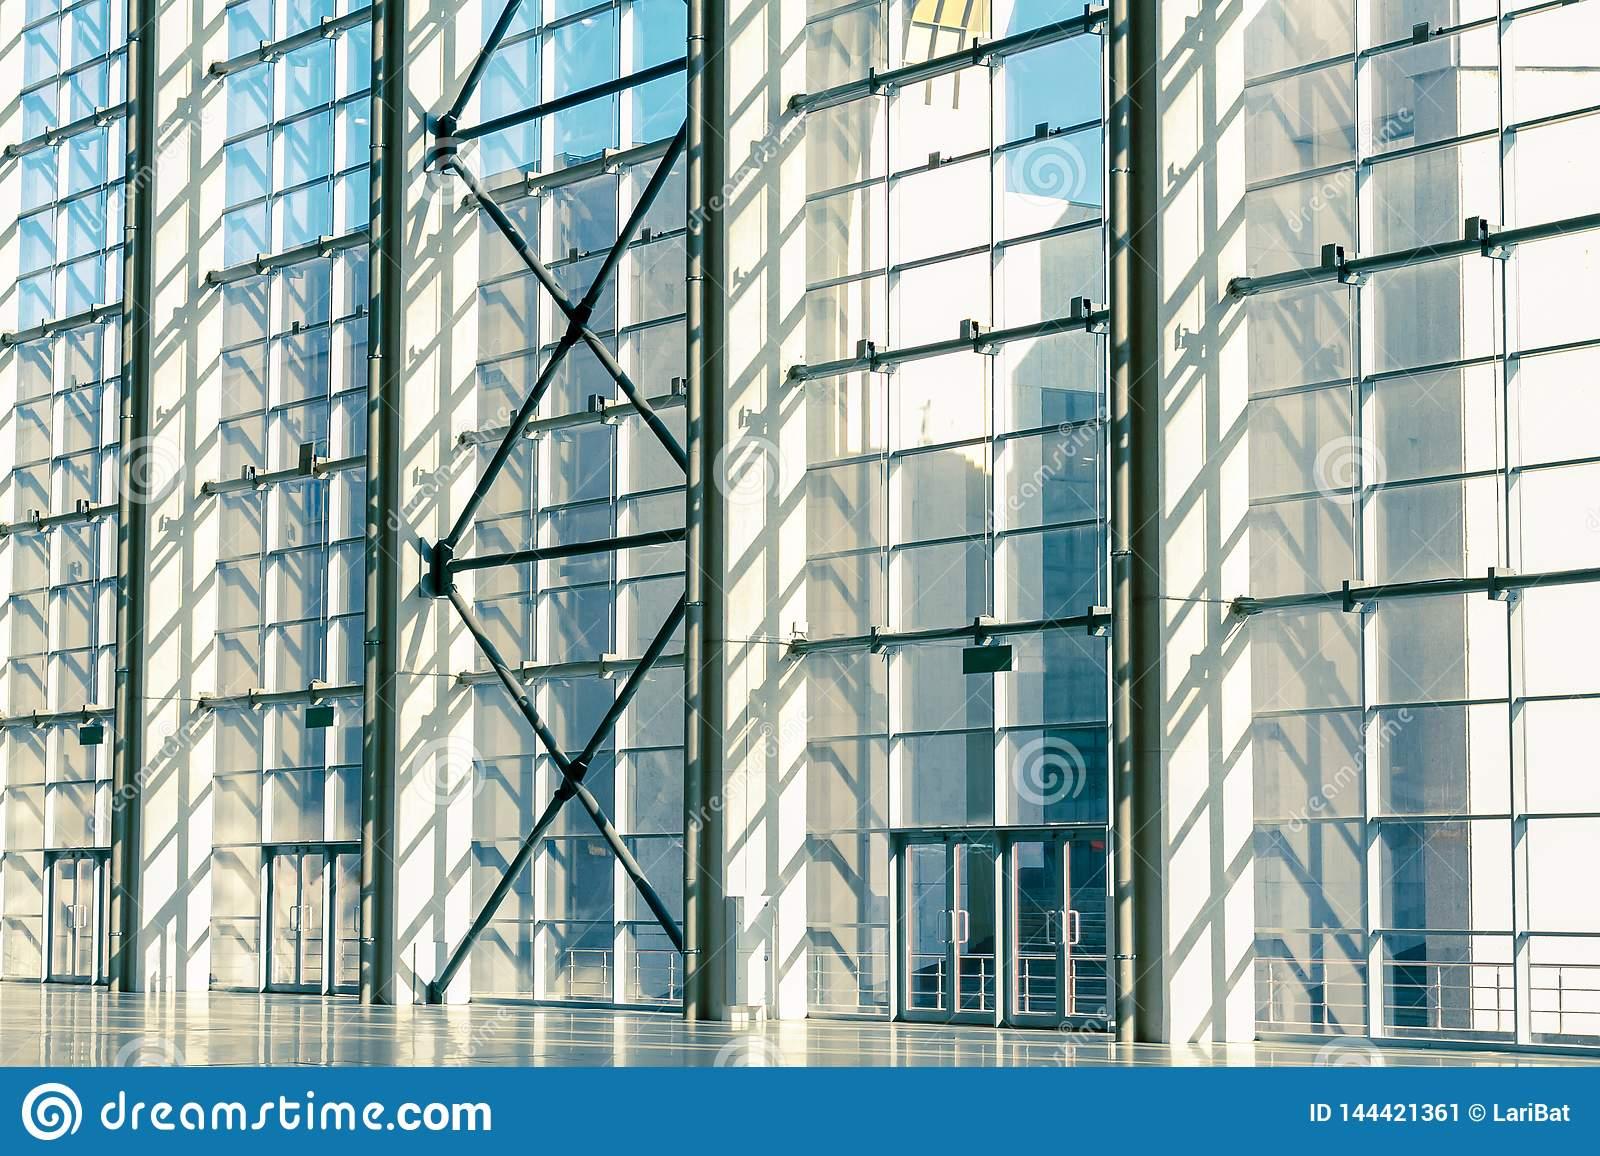 Glass windows, doors, walls in commercial real estate